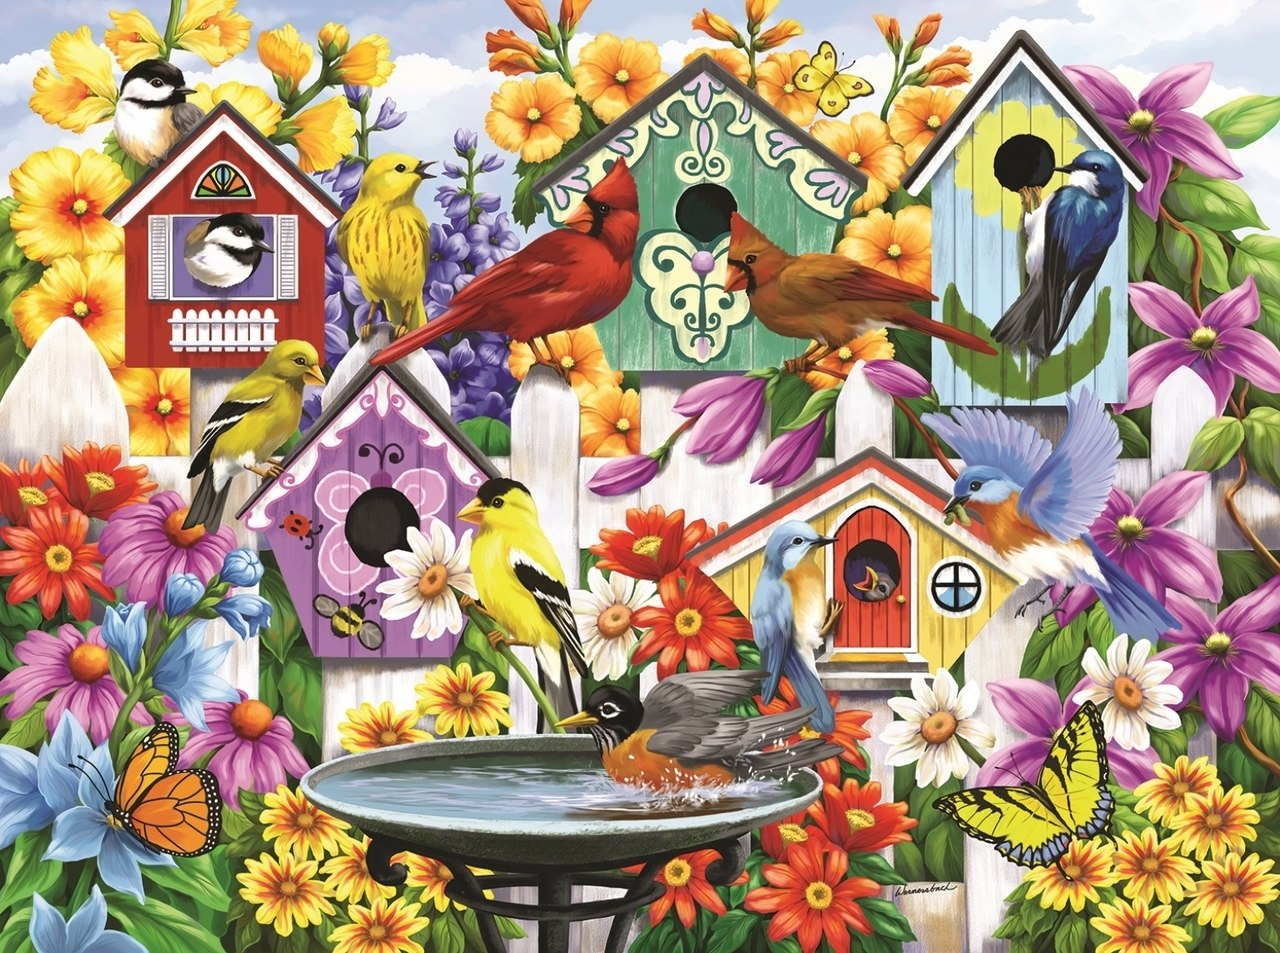 Garden Neighbors - 1000pc Jigsaw Puzzle By Sunsout  			  					NEW